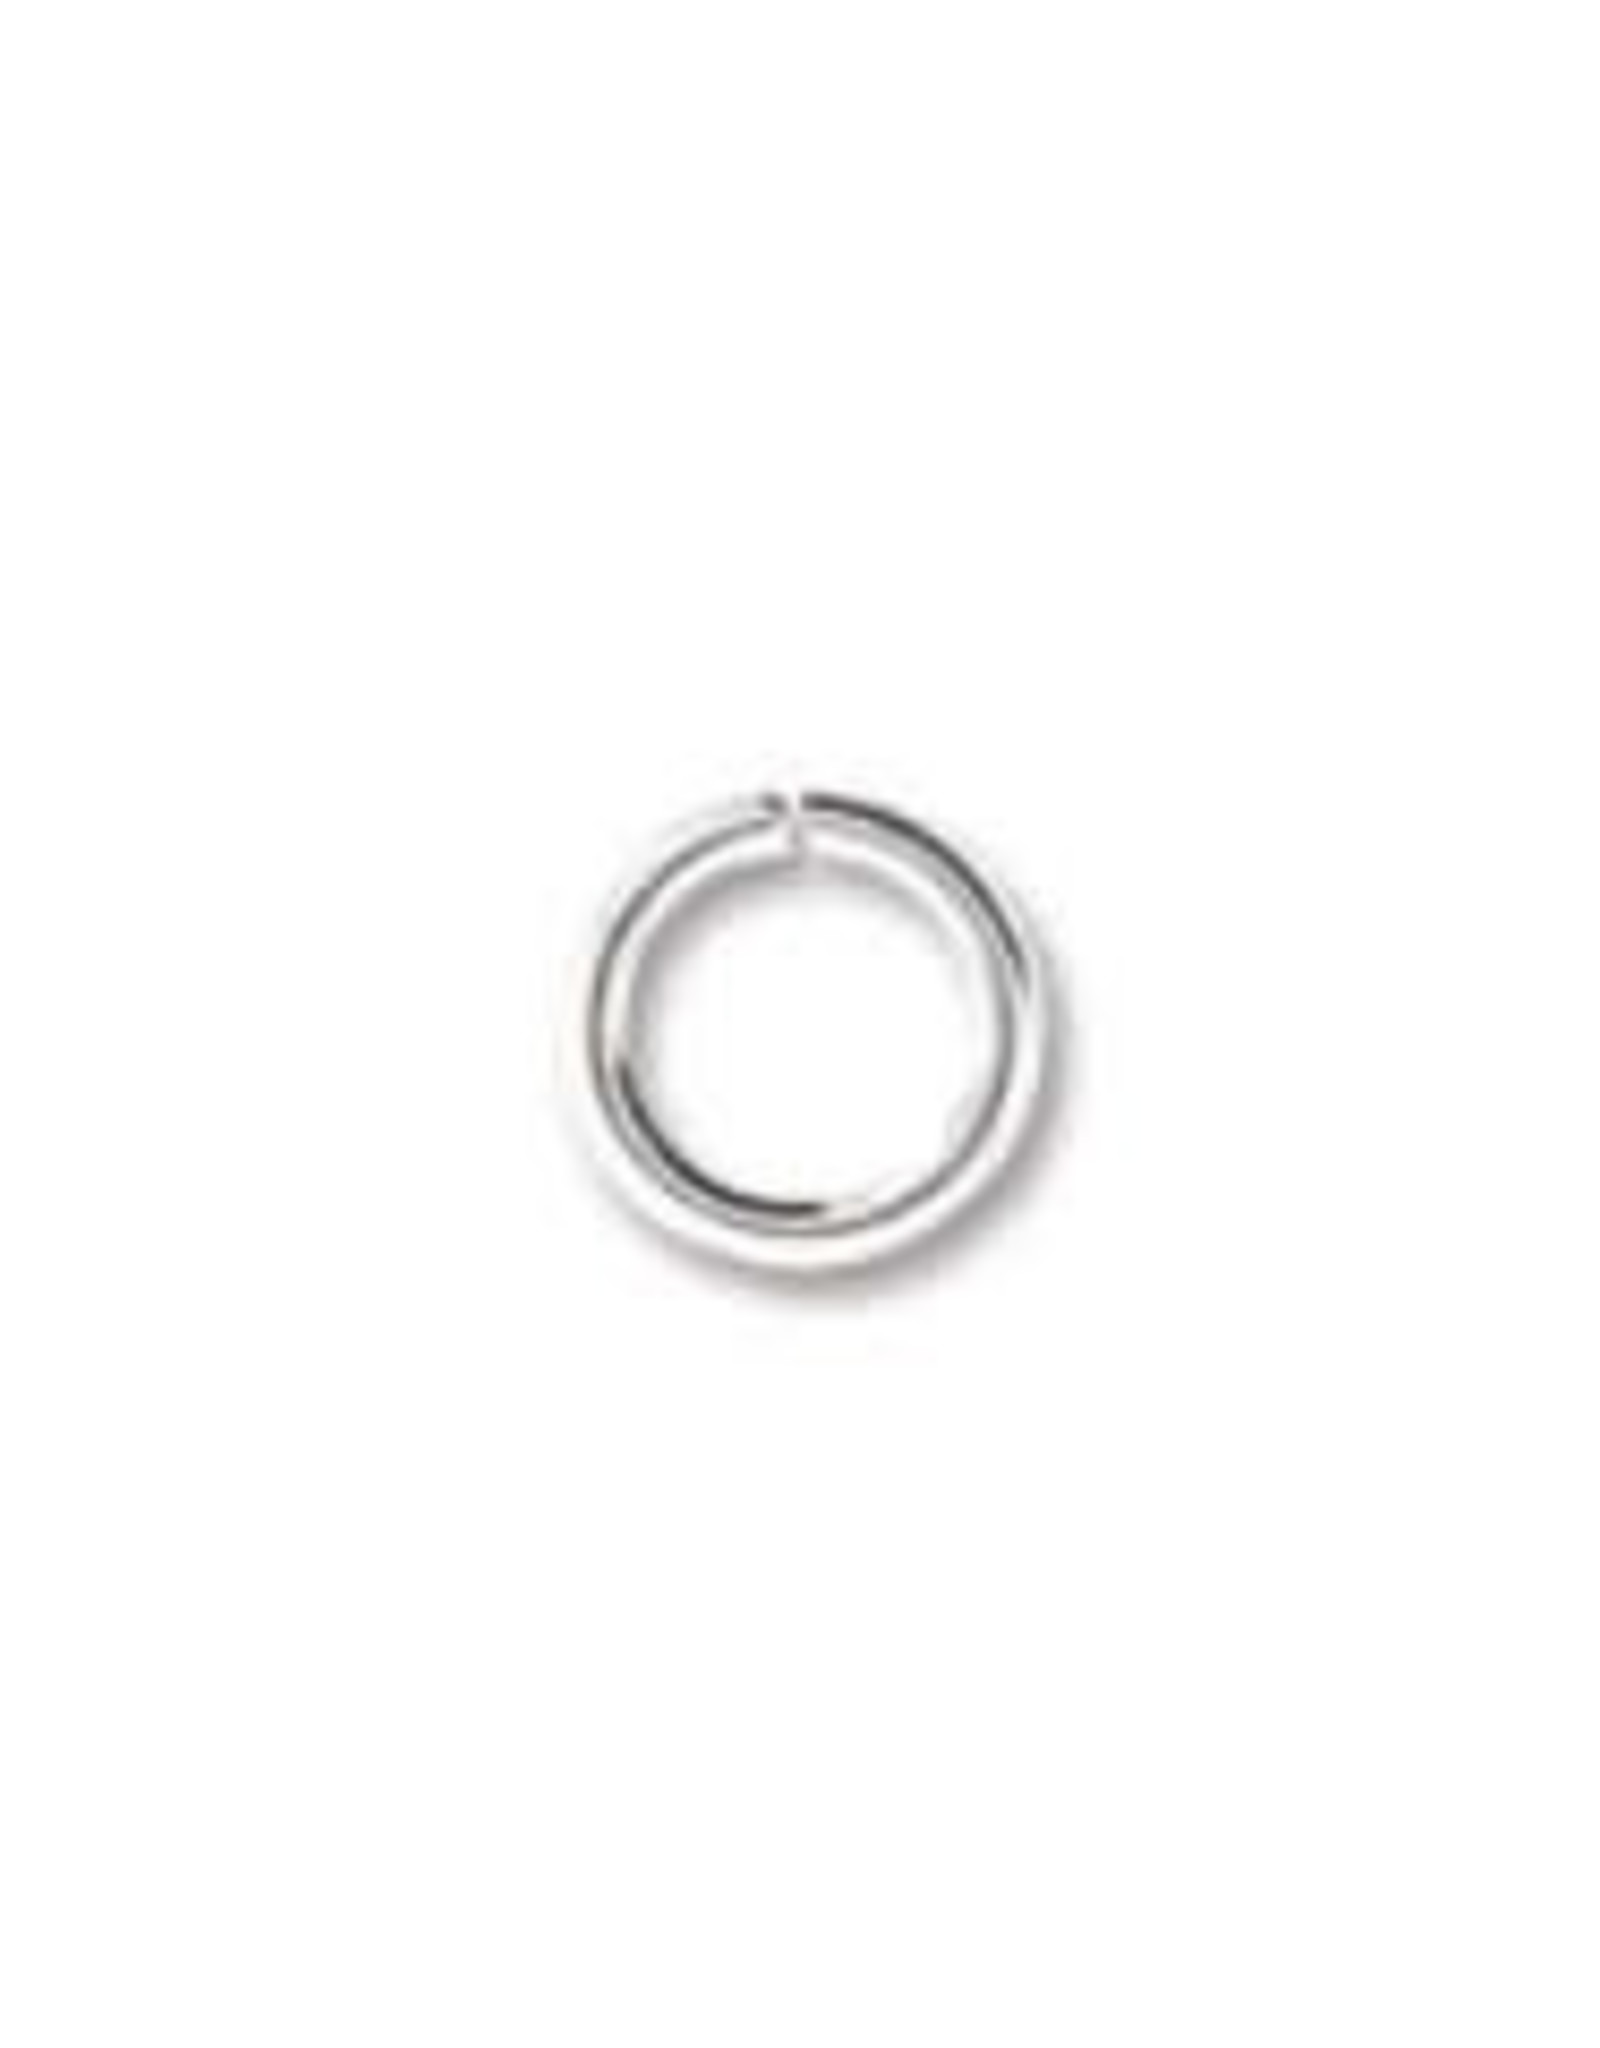 6mm Jump Ring Silver Plated Qty 24